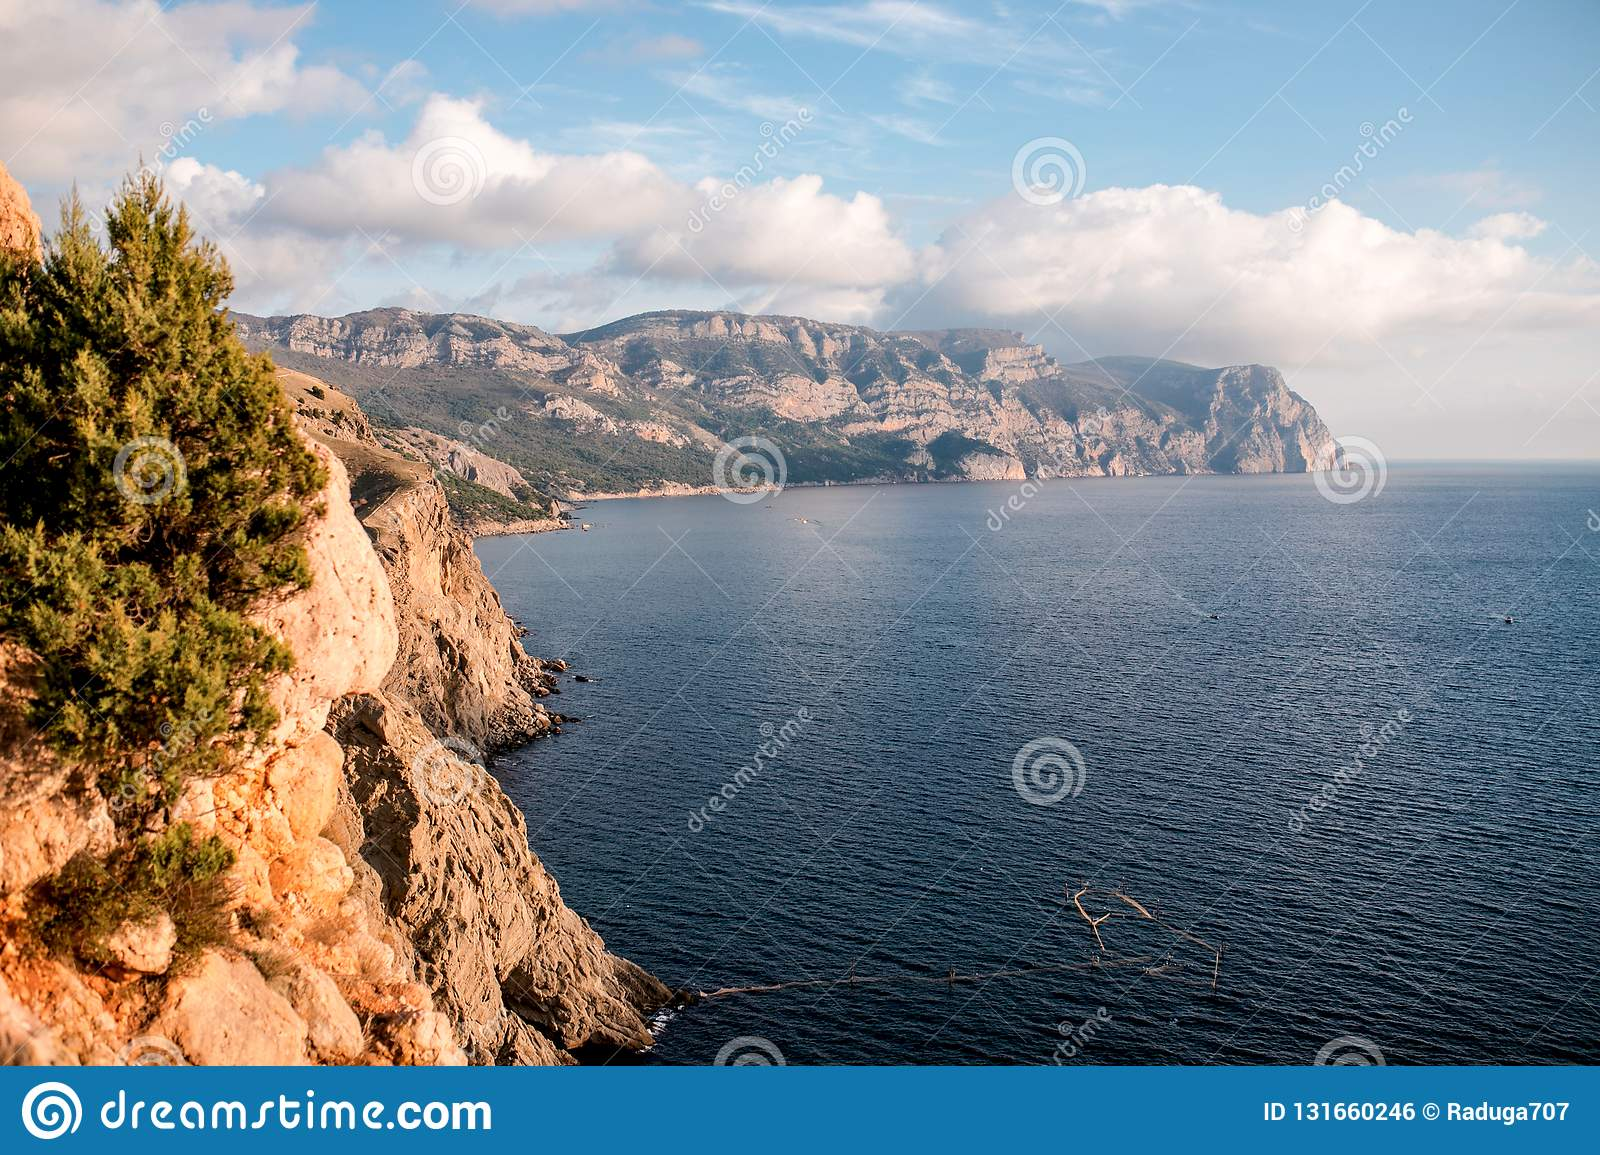 South coast of Crimea landscape, Black Sea.